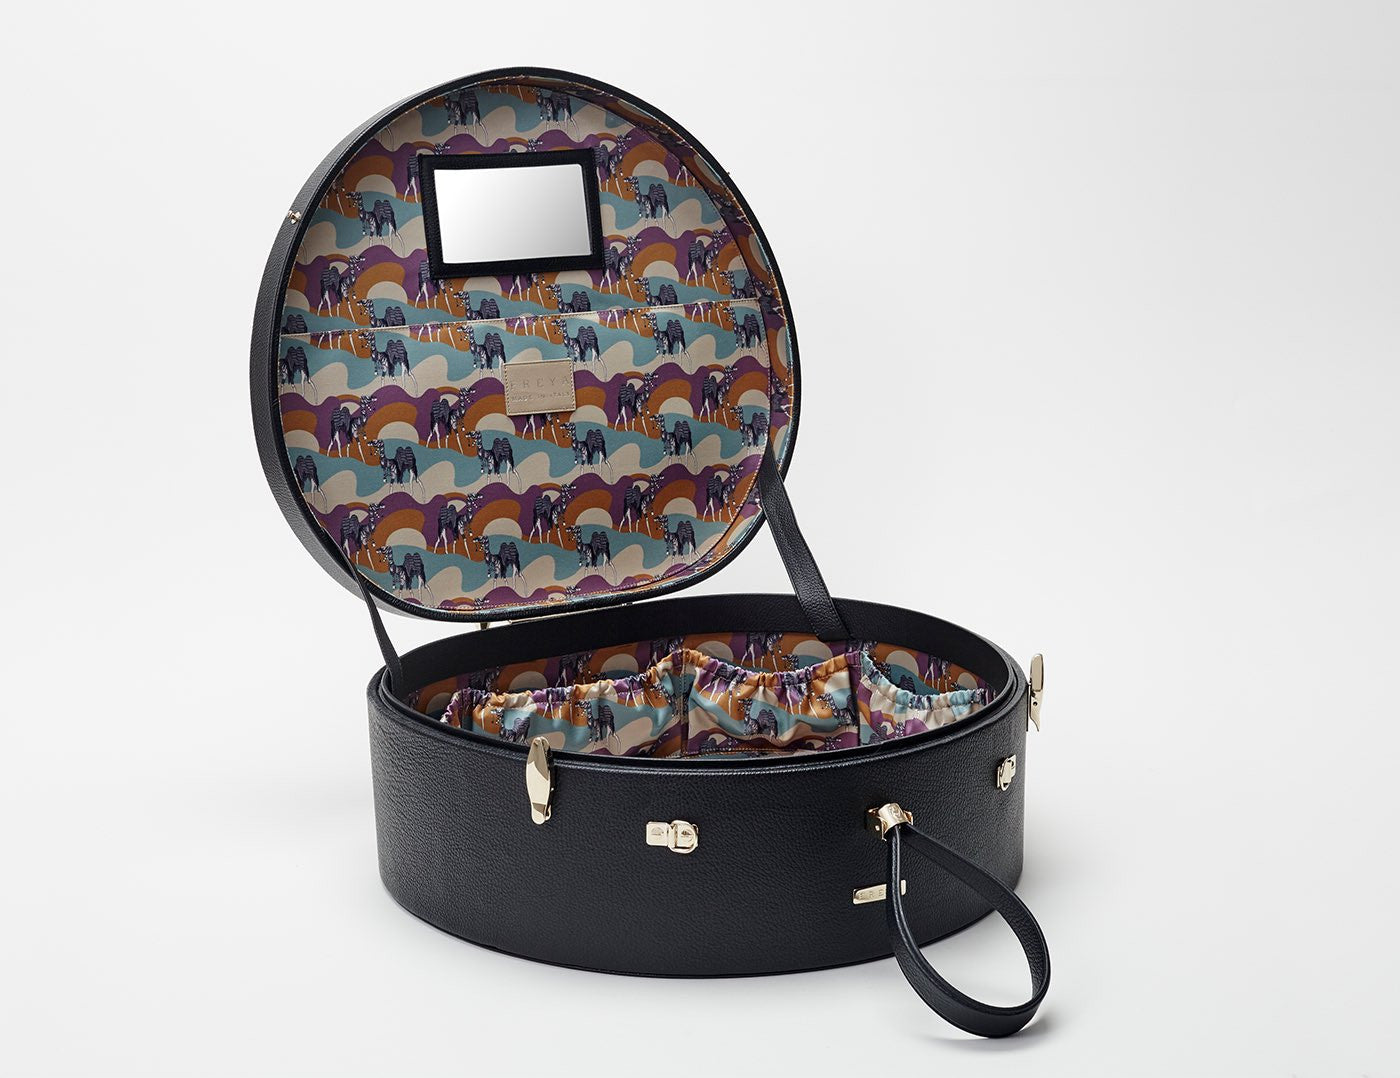 Poppy Travel Hat Box, Black